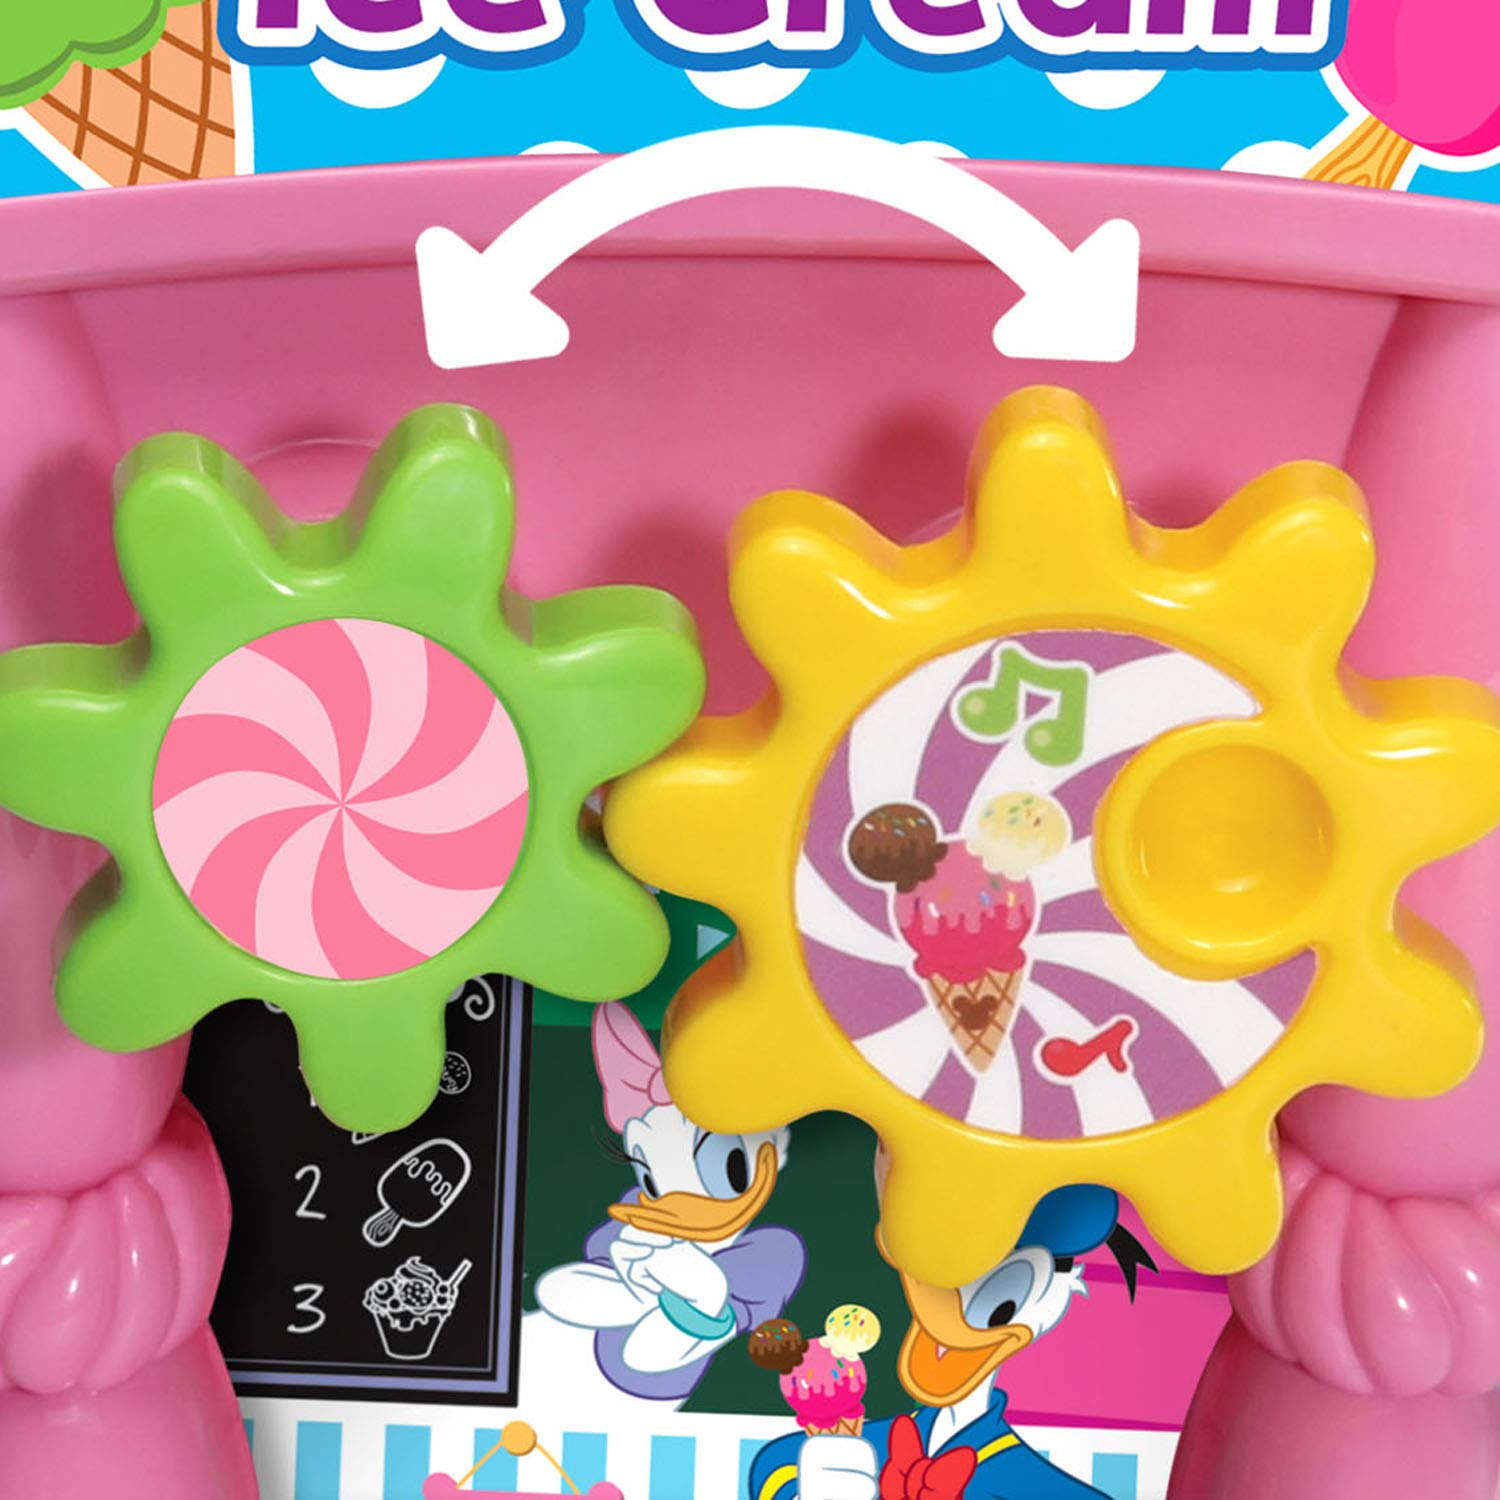 VTech Go! Go! Smart Wheels Minnie Mouse Ice Cream Parlor by VTech (Image #7)